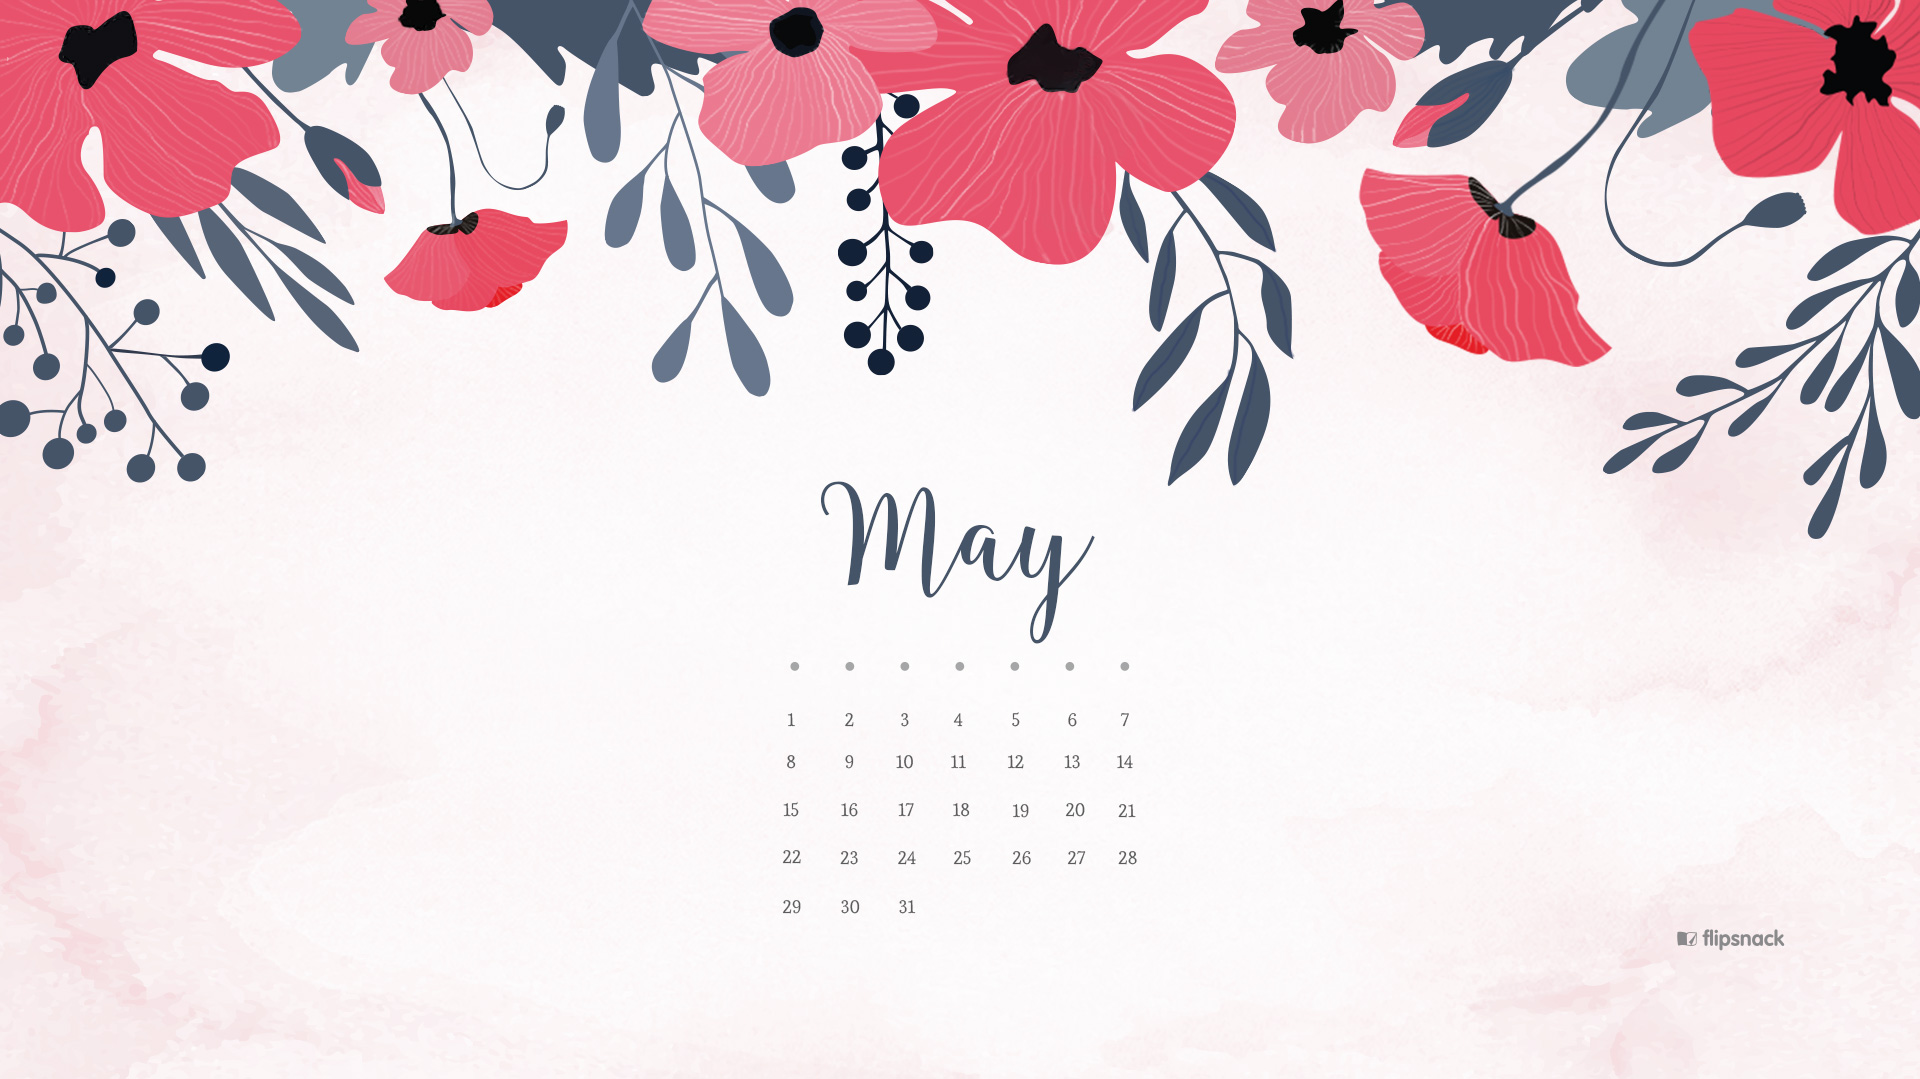 May 2018 Free Wallpaper Calendar